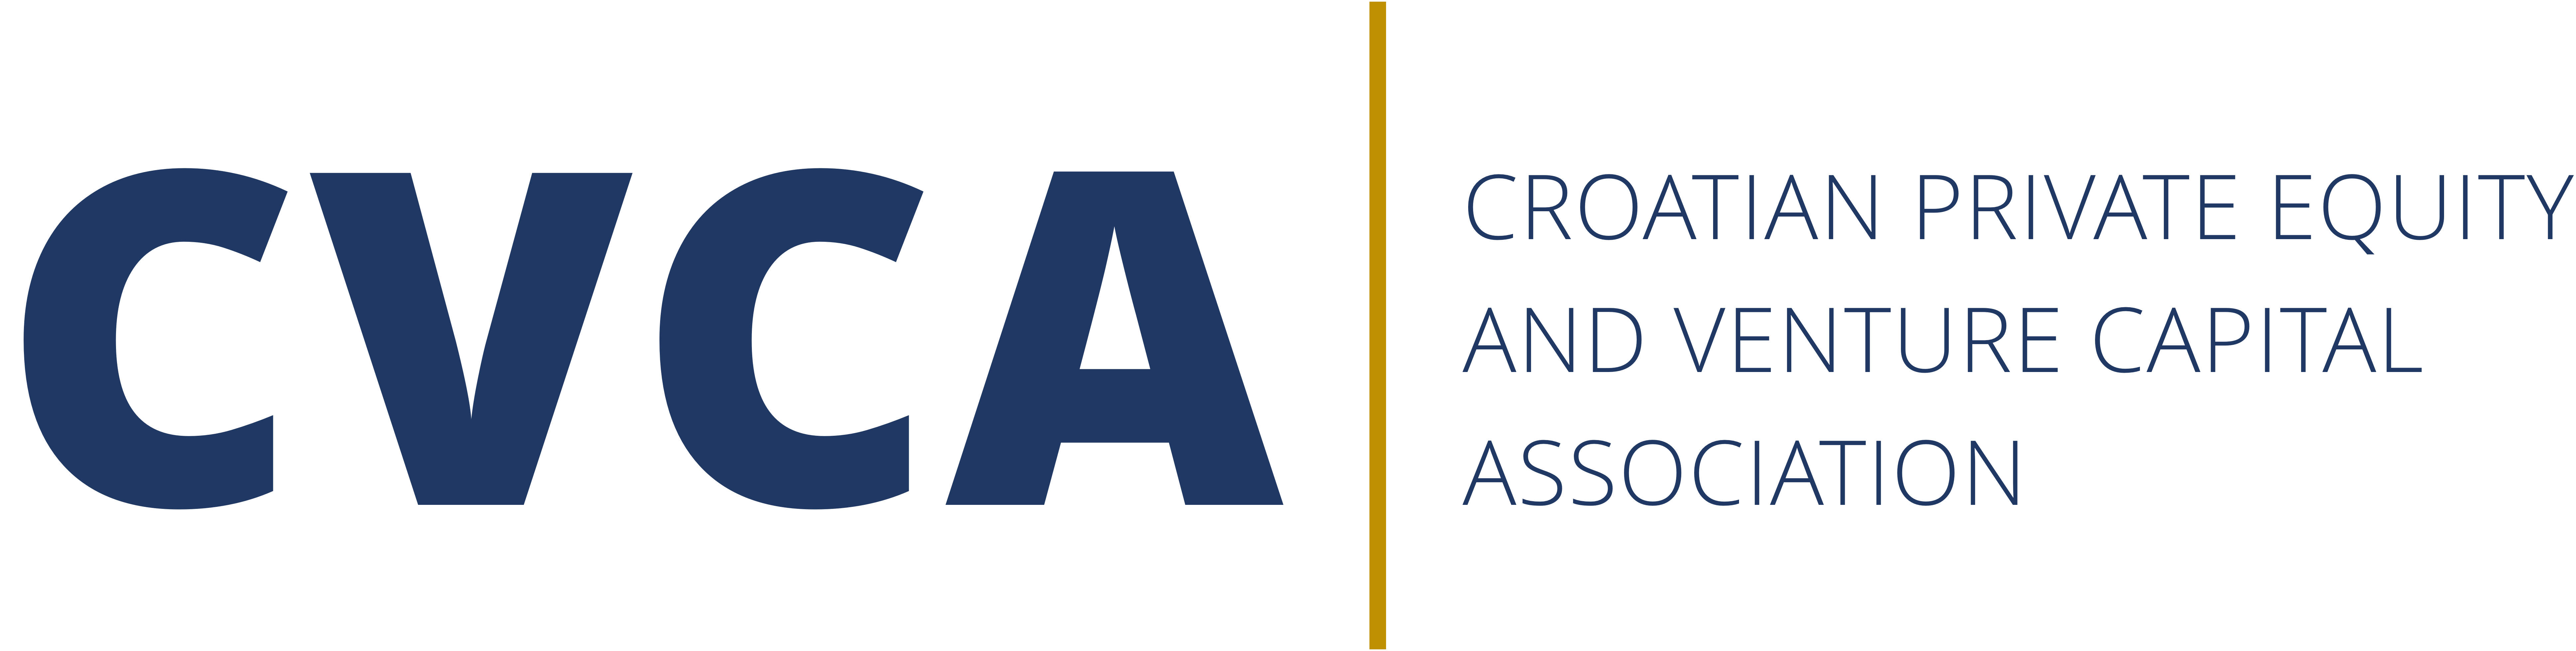 Croatian Private Equity and Venture Capital Association logo